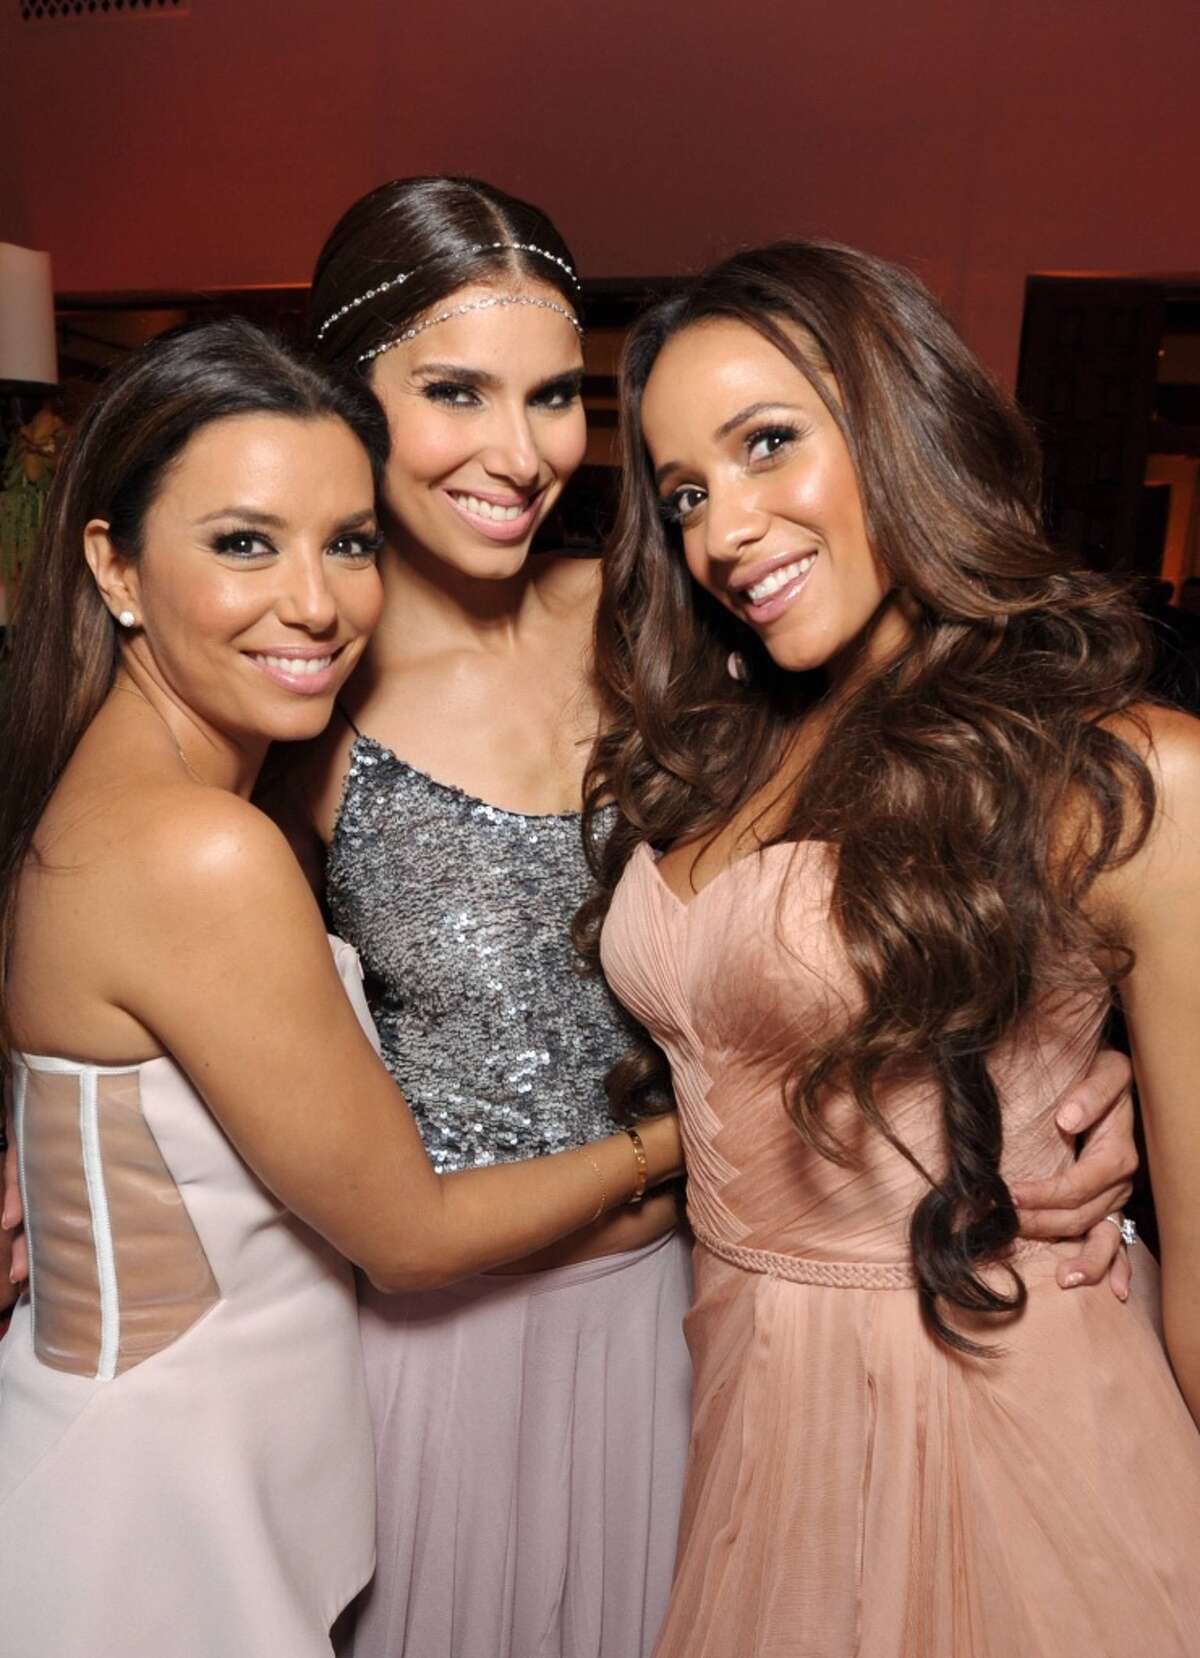 From left, executive producer Eva Longoria, Roselyn Sanchez, and Dania Ramirez attend Lifetime's Devious Maids Premiere Party, on Monday, June 17, 2013 in Pacific Palisades, Calif. (Photo by John Shearer/Invision for Lifetime/AP Images)